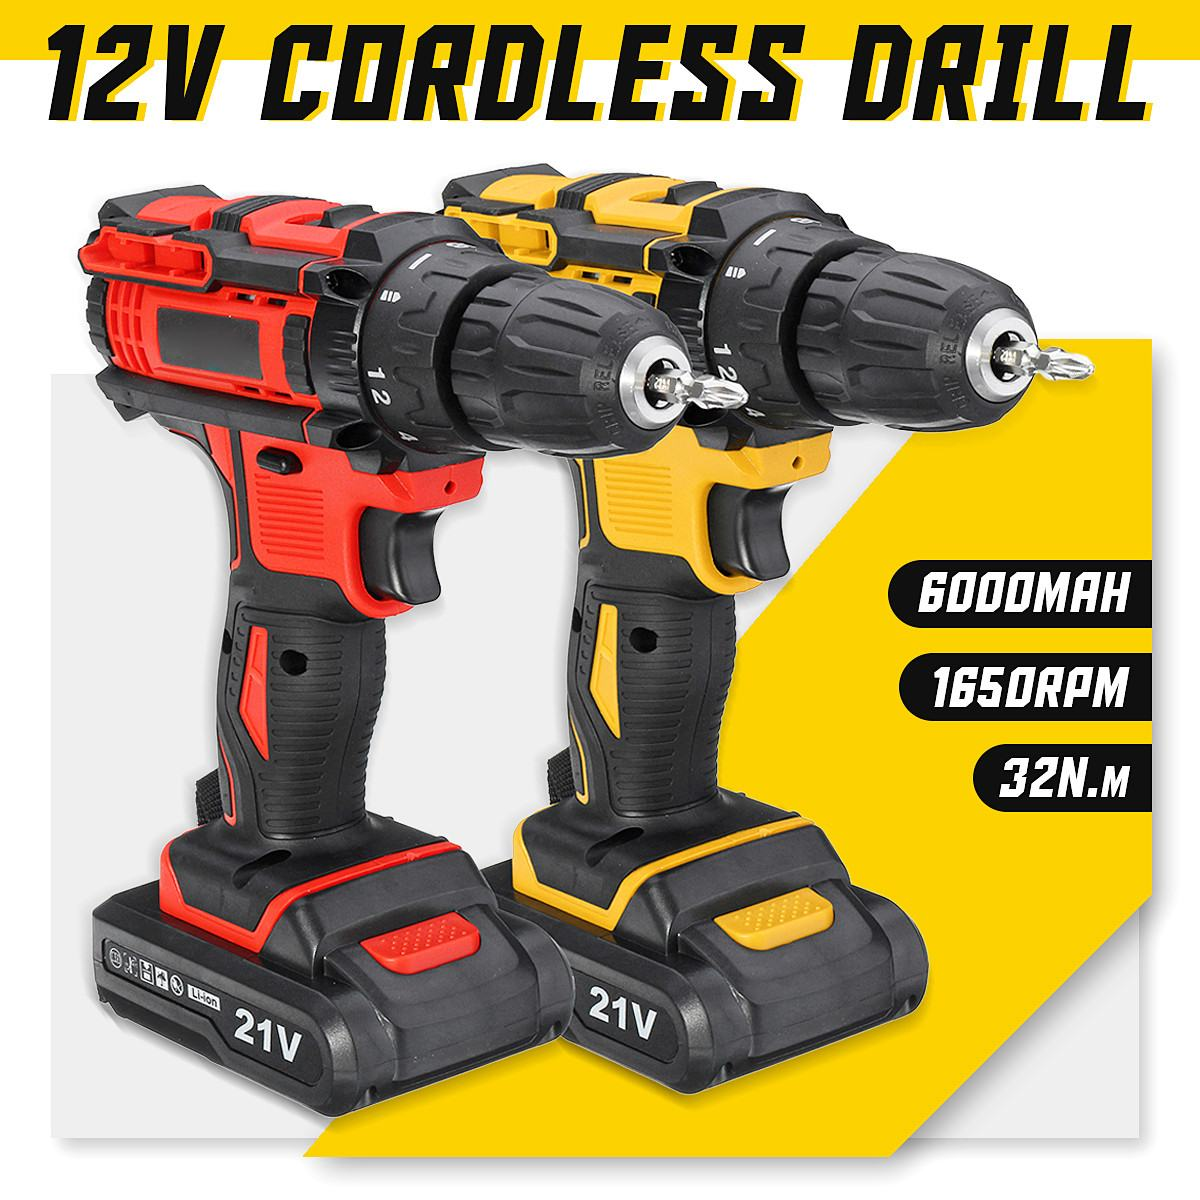 Electric Screwdriver Cordless Drill Wireless Power Driver 21V Max DC Lithium-Ion Battery 10mm 2-Speed 18+1 Torque adjustableElectric Screwdriver Cordless Drill Wireless Power Driver 21V Max DC Lithium-Ion Battery 10mm 2-Speed 18+1 Torque adjustable